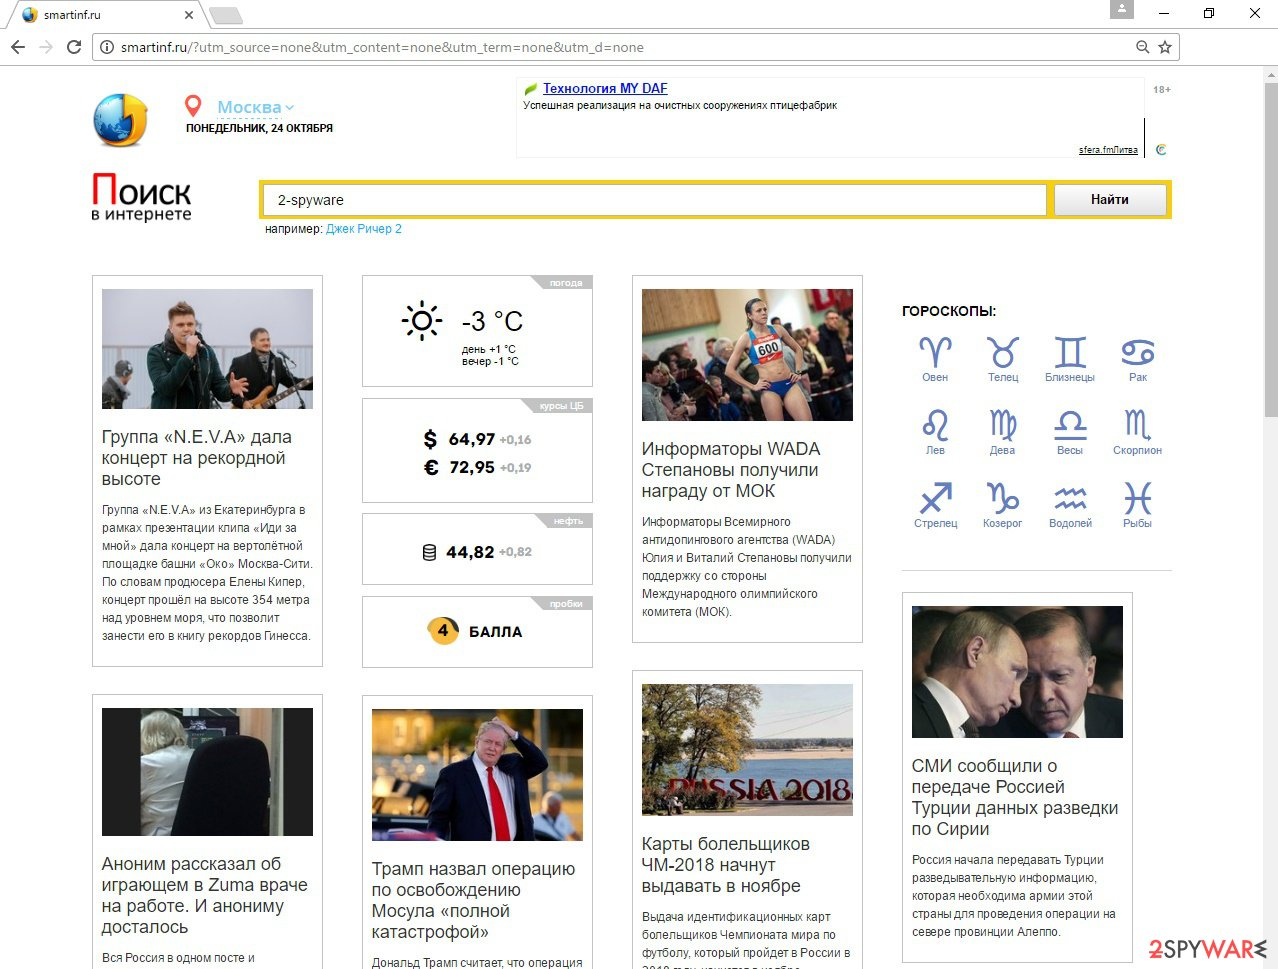 The main page of Mandami.ru virus